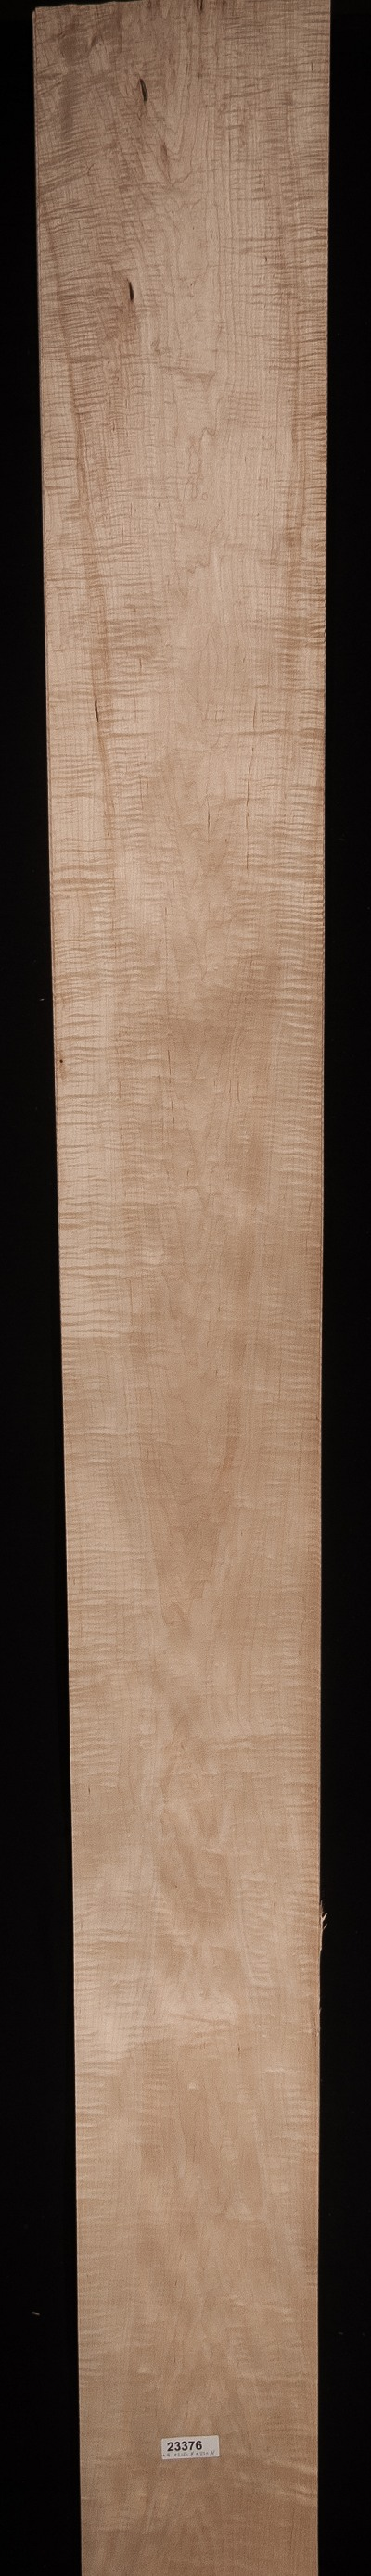 Curly Maple Veneer Sheet